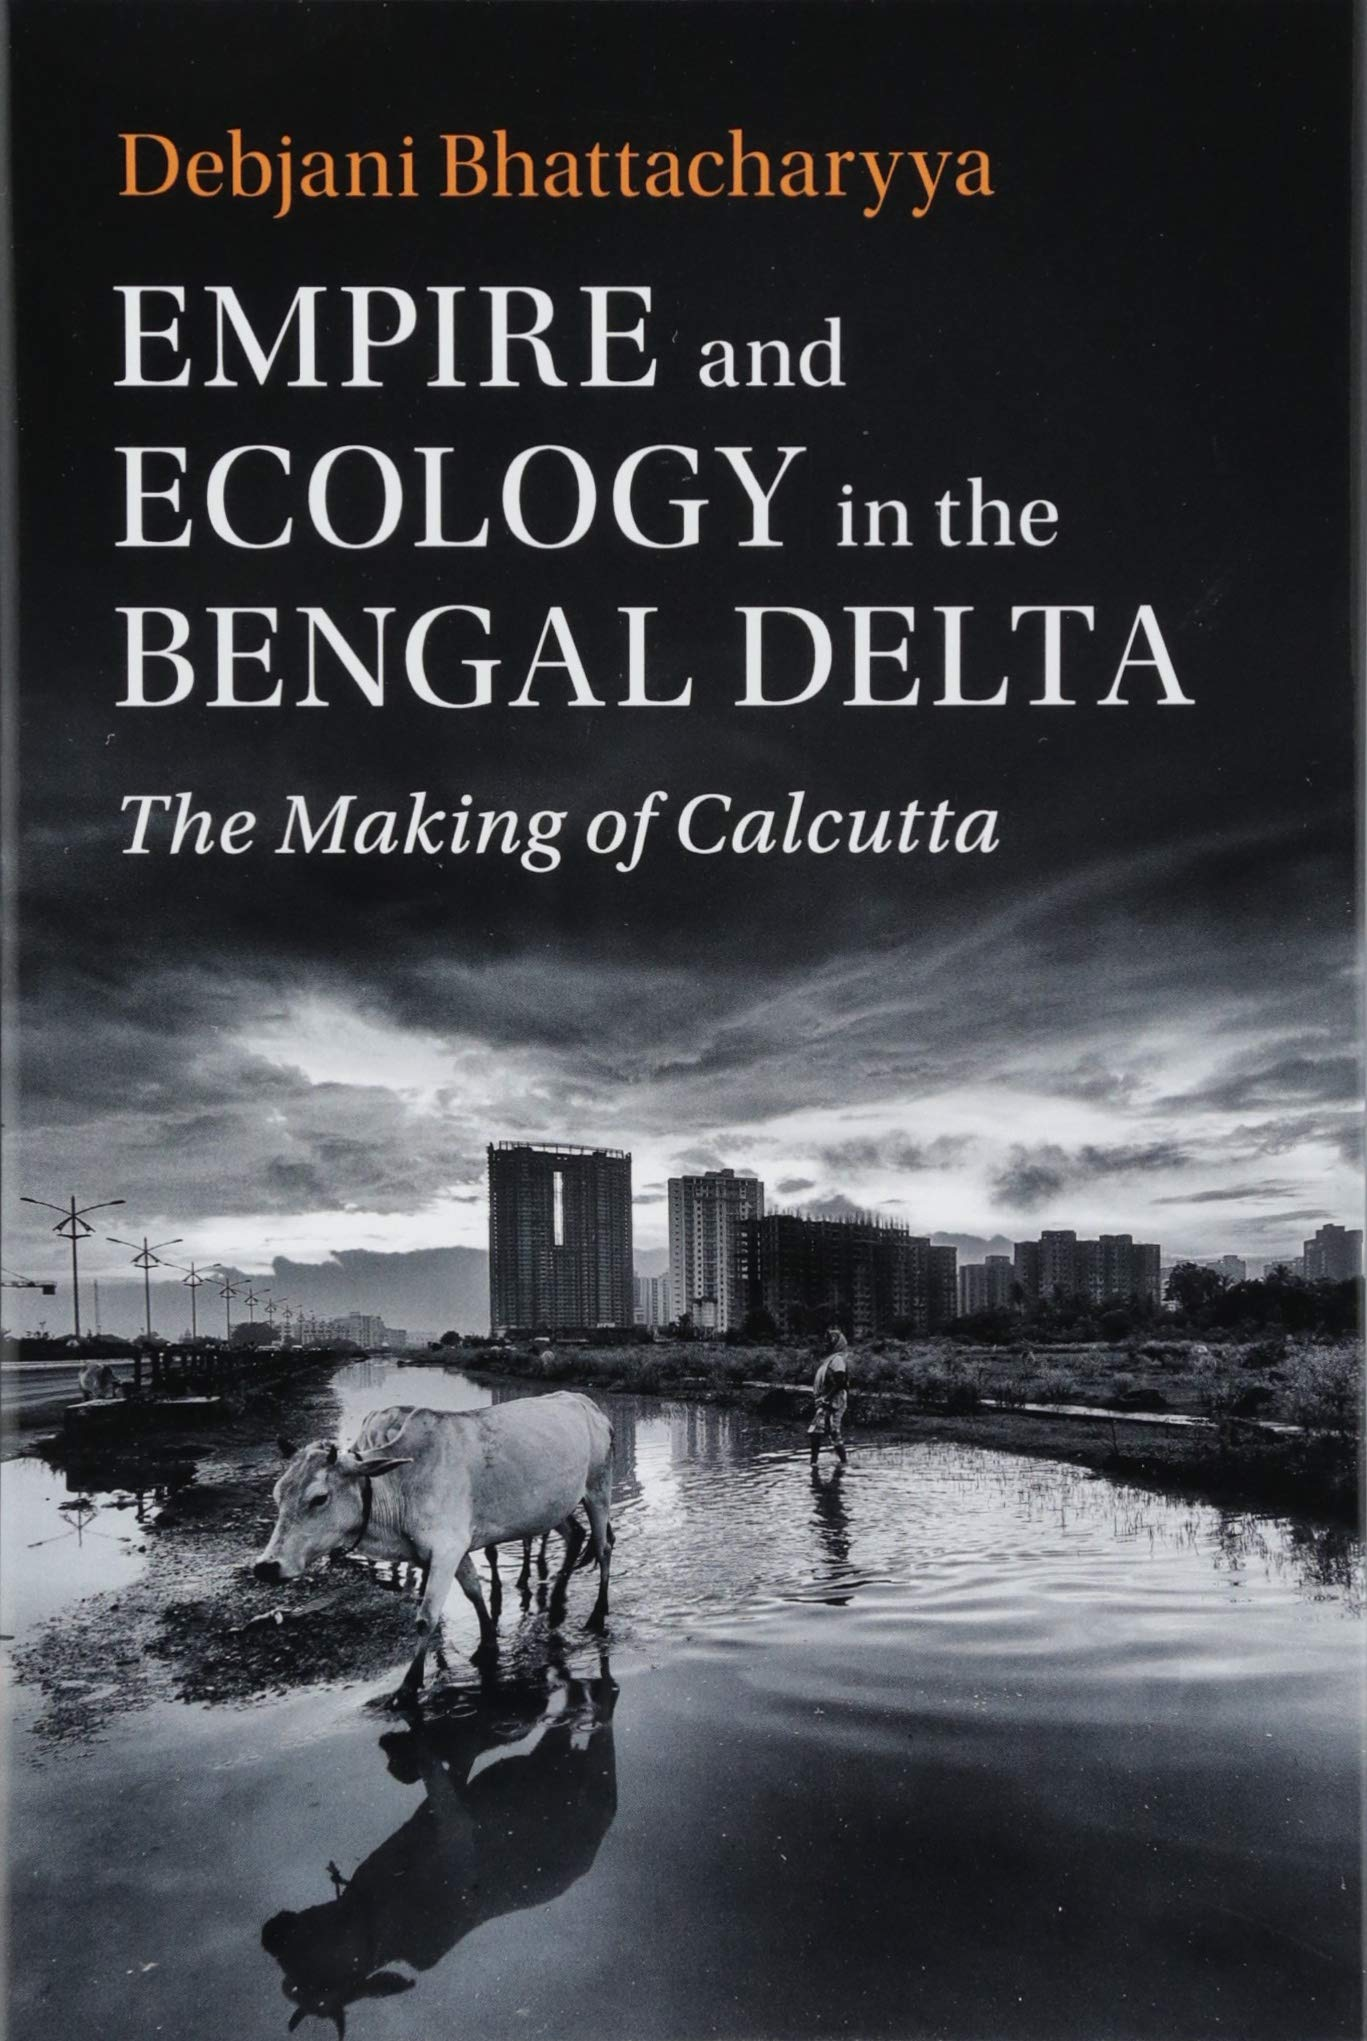 Download Empire and Ecology in the Bengal Delta: The Making of Calcutta (Studies in Environment and History) PDF